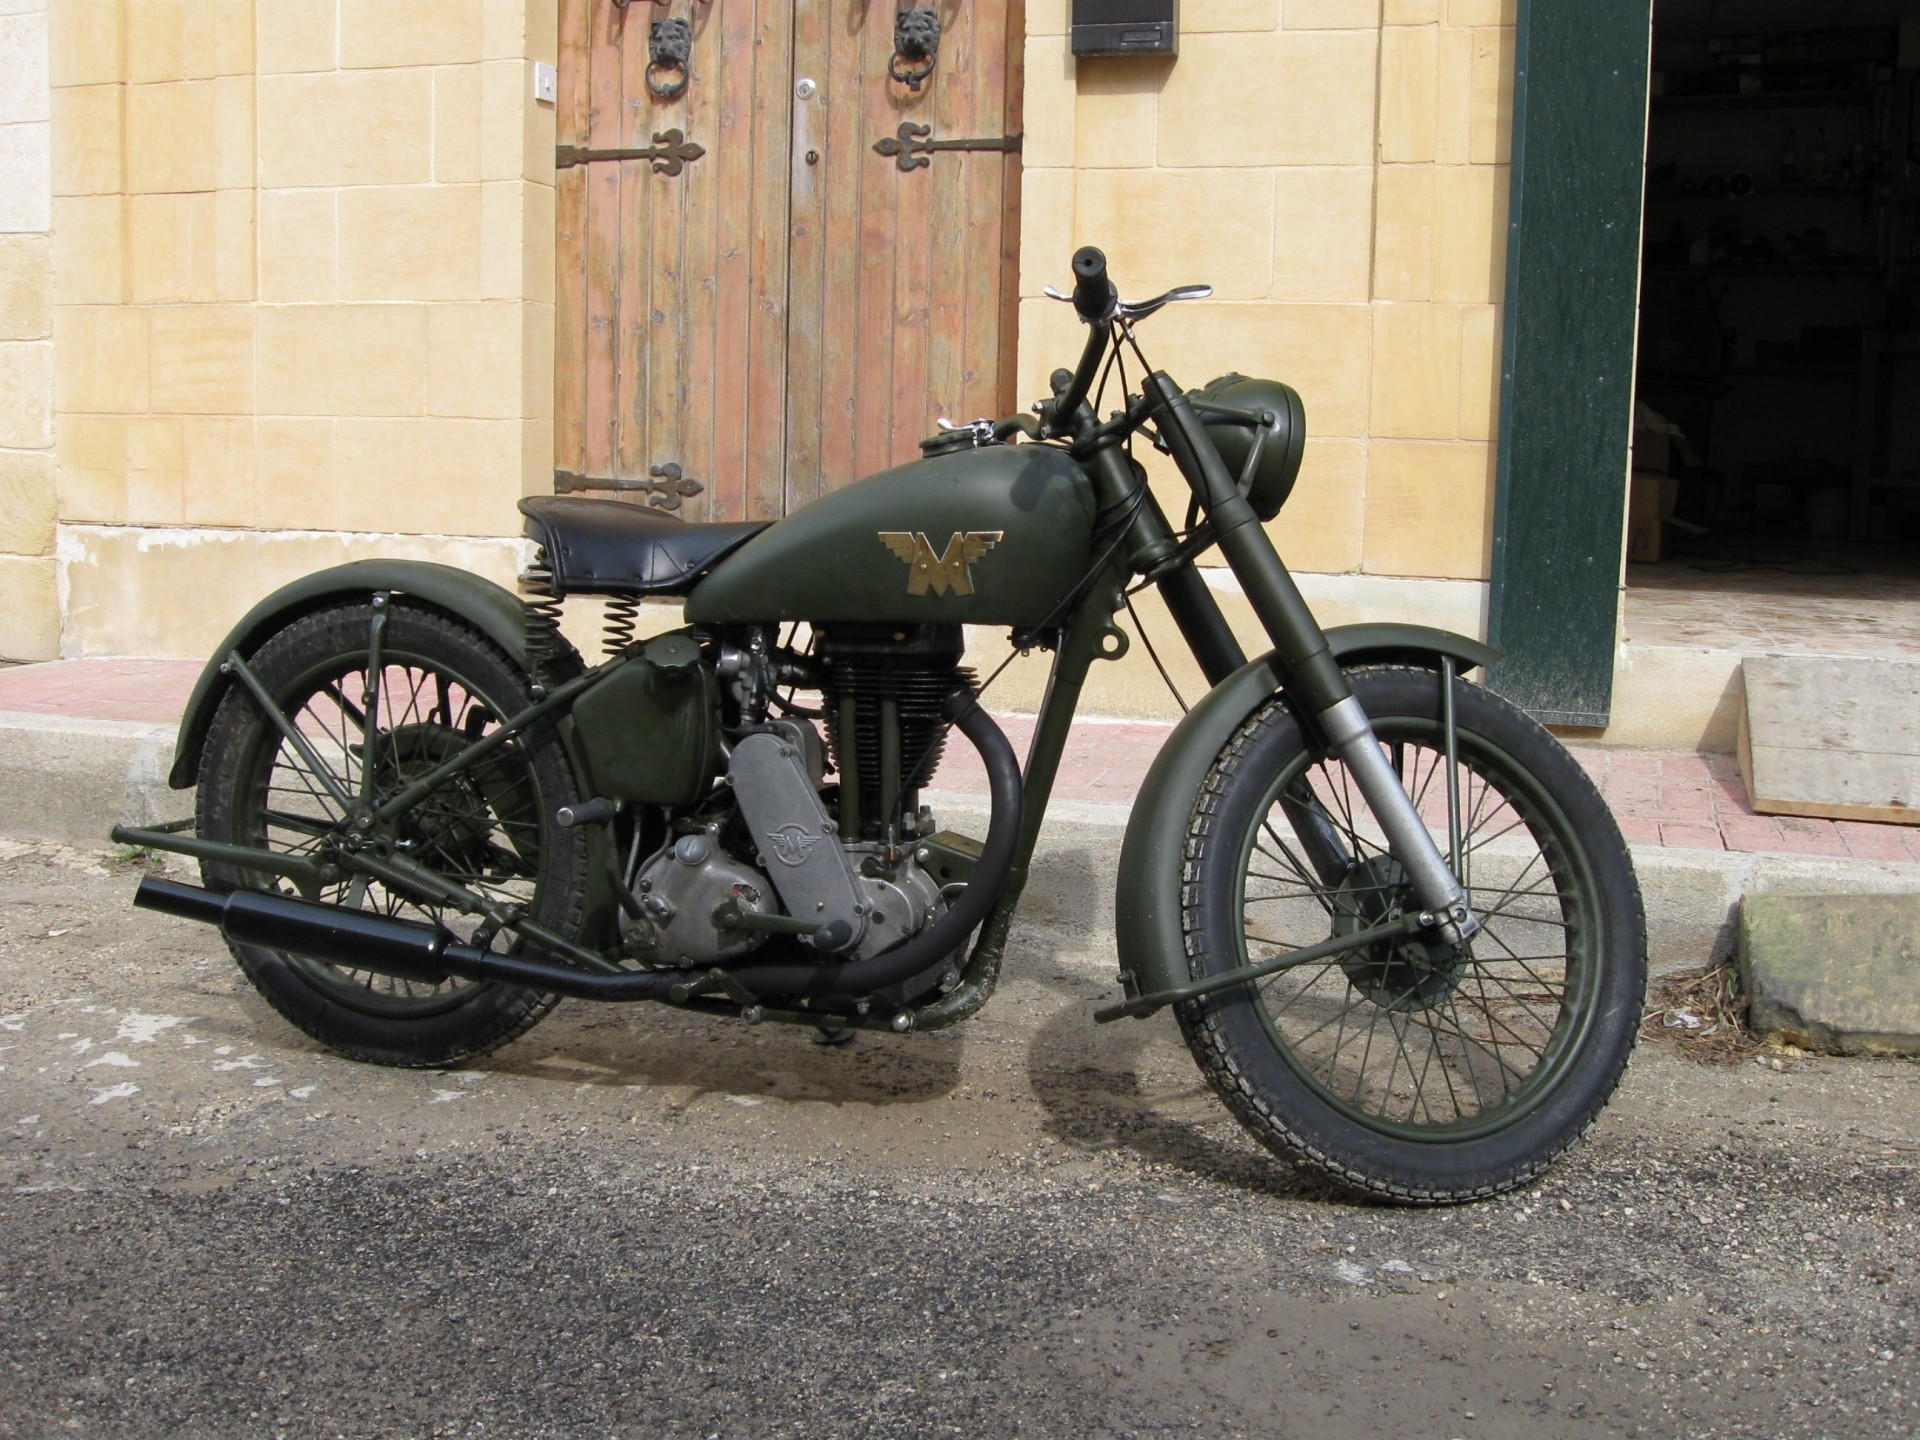 Res: 1920x1440, 2560x1440 · Download · classic motorcycles image wallpaper · 1920x1080 classic  motorcycles image wallpaper